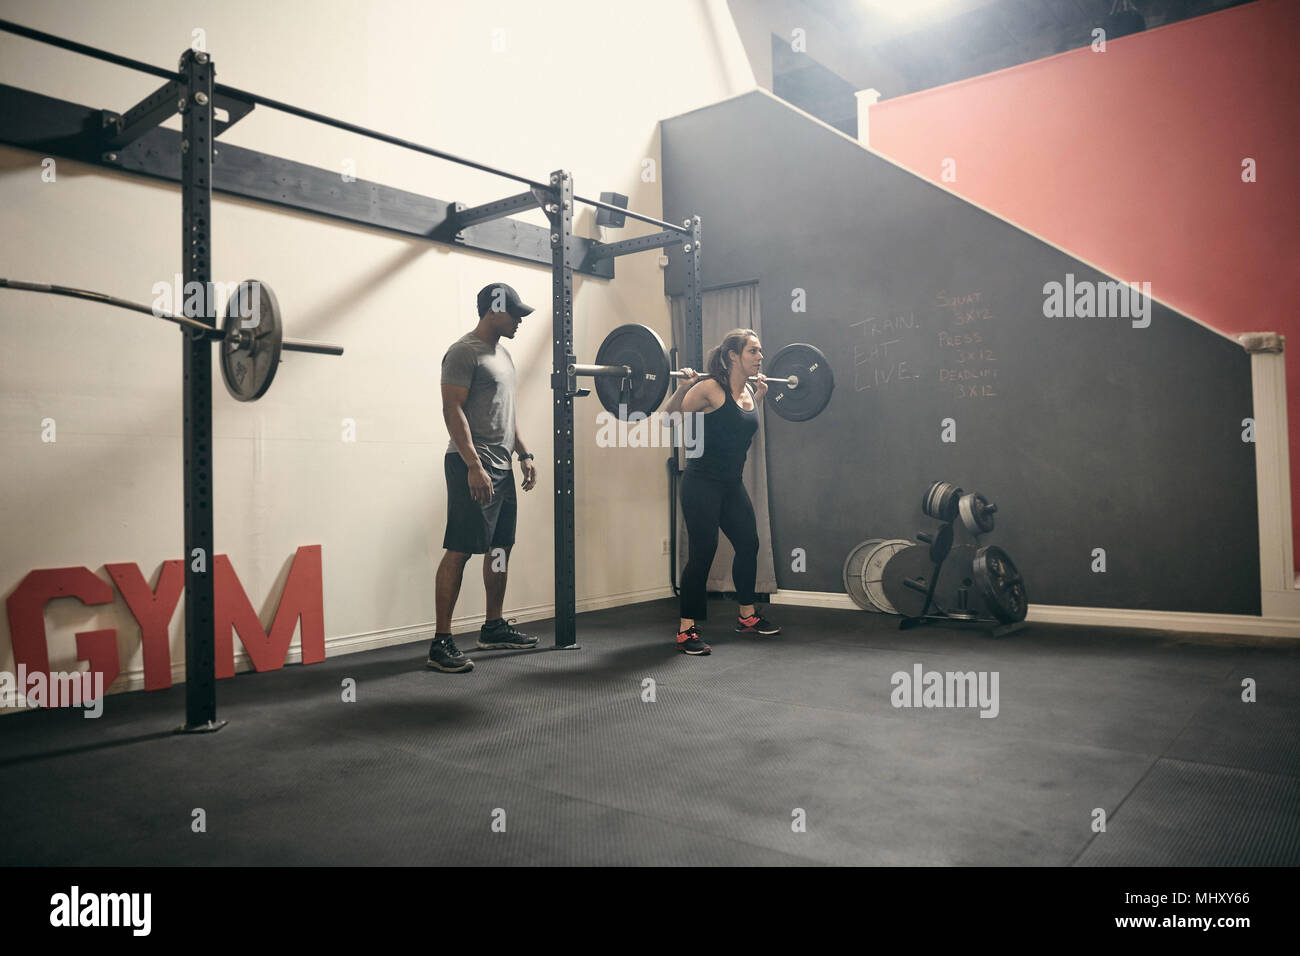 Woman in gym weightlifting using barbell - Stock Image